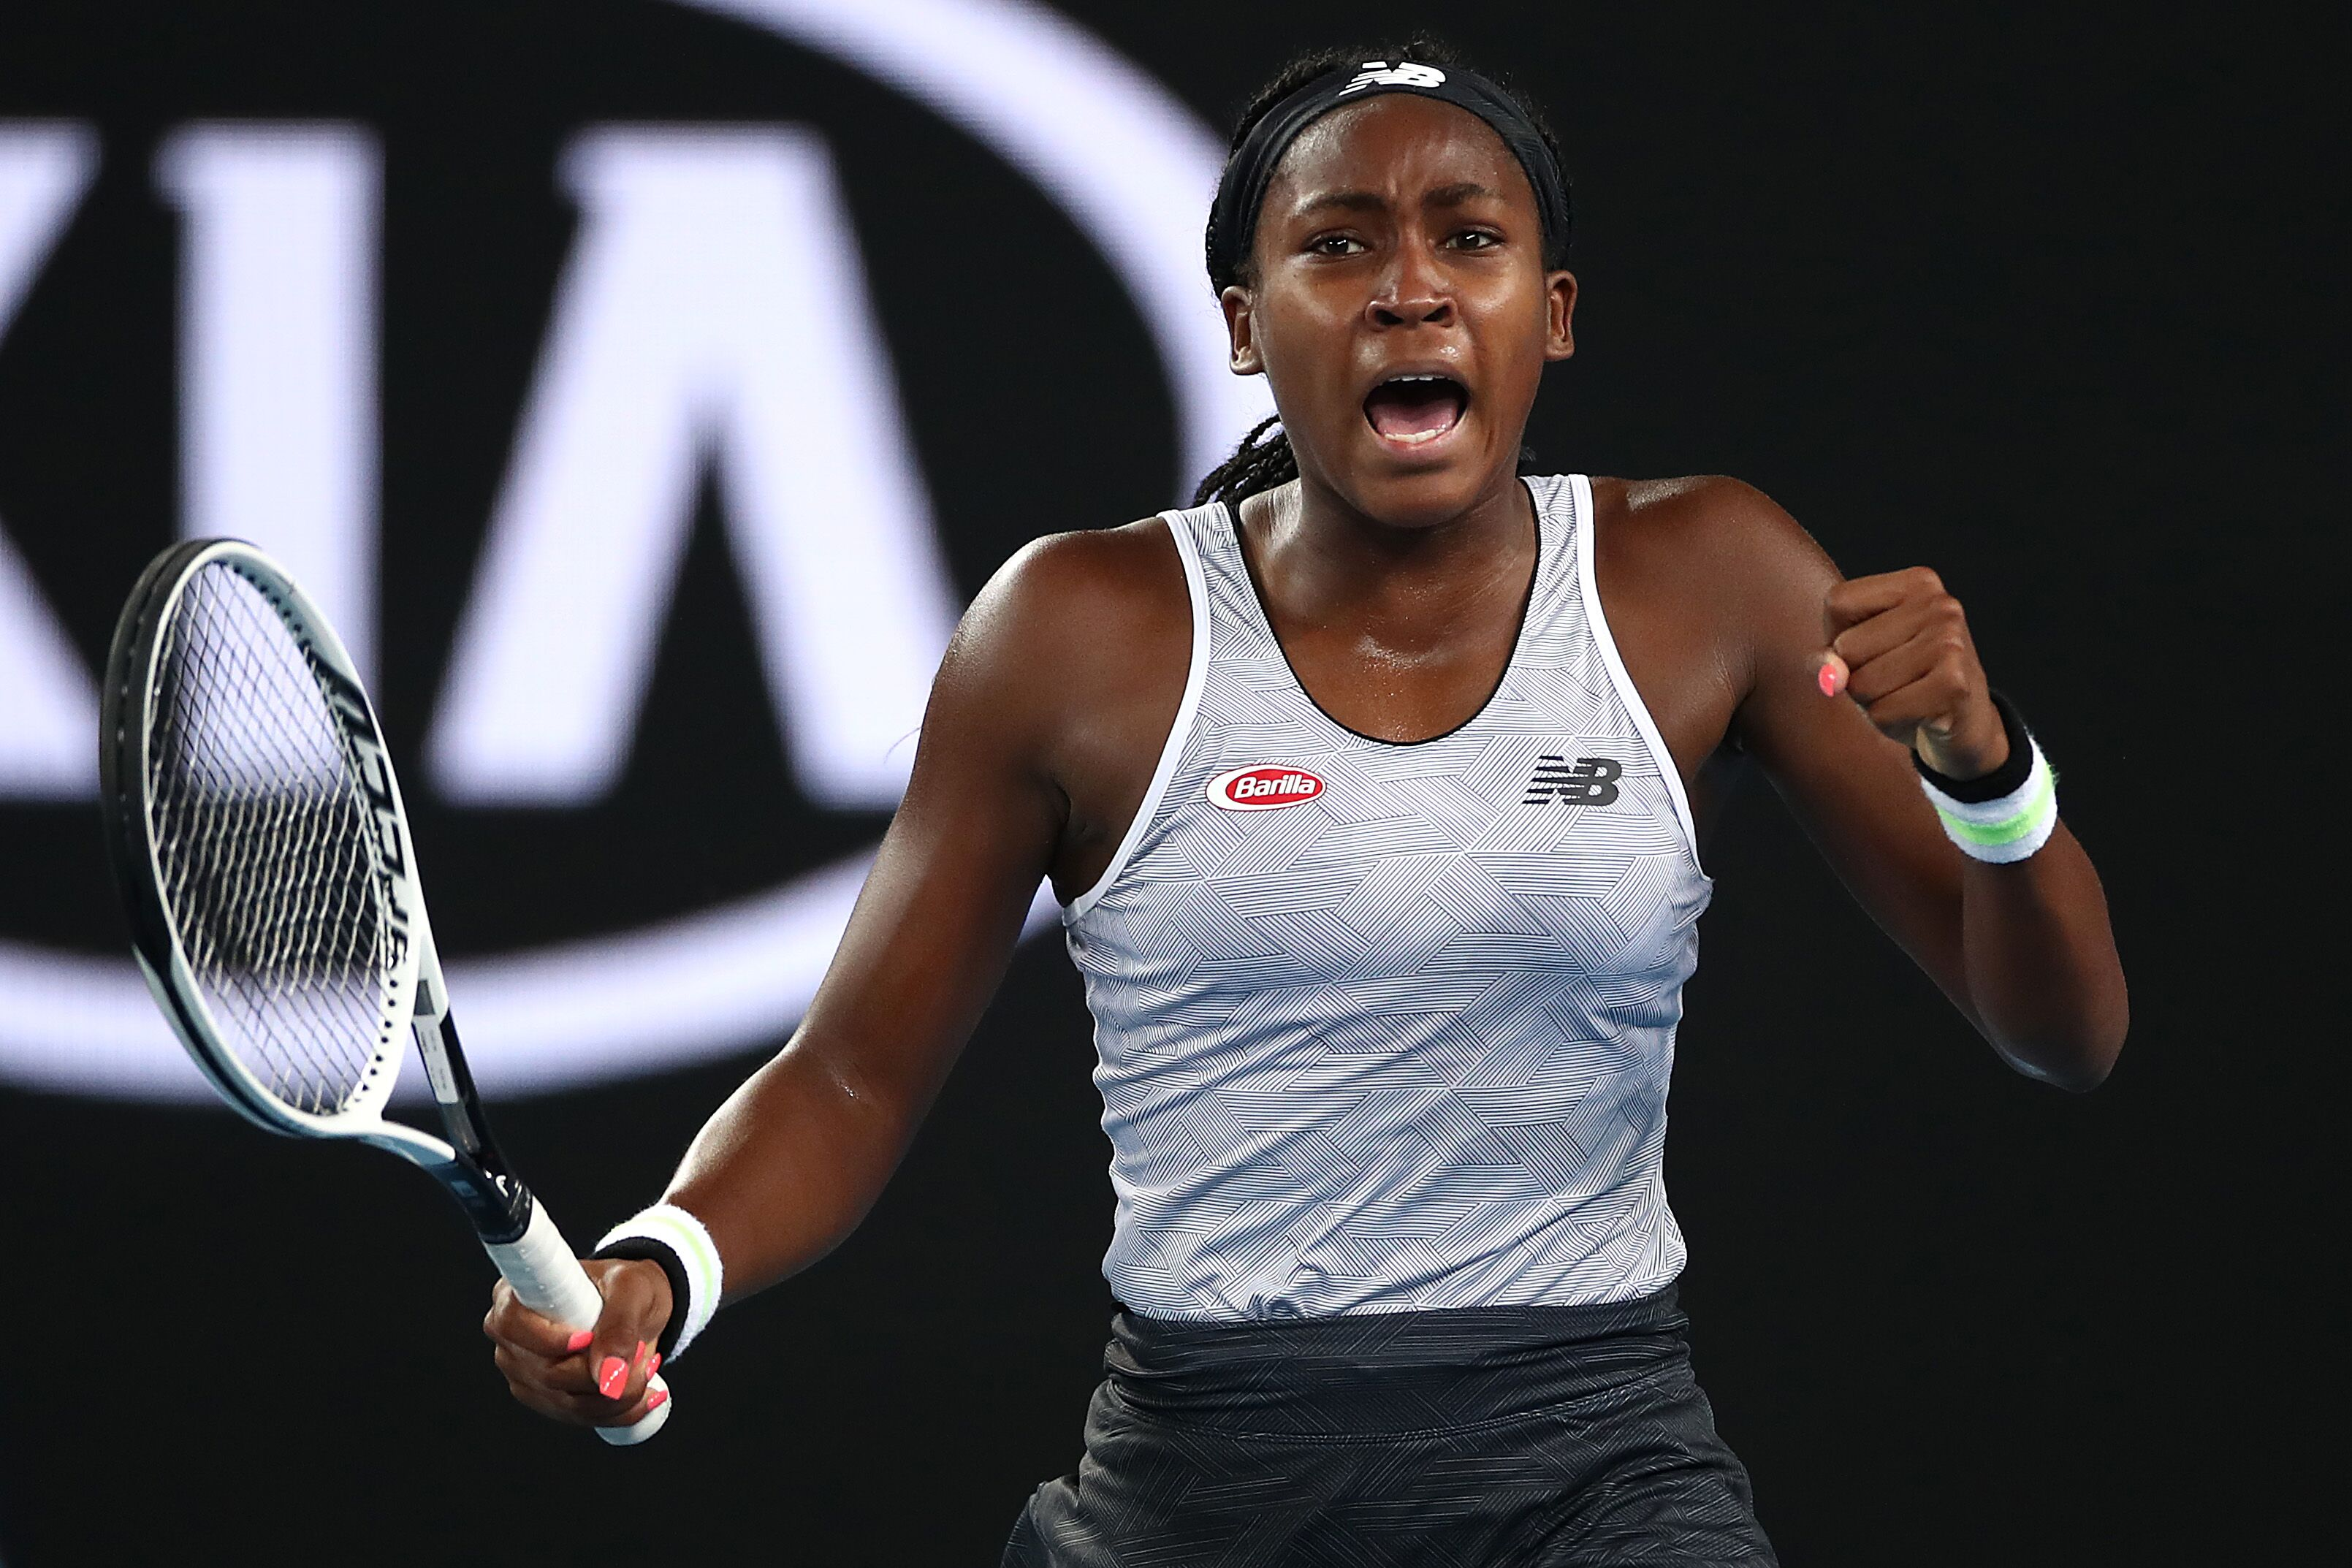 A portrait of Coco Gauff during one of her tennis matches | Source: Getty Images